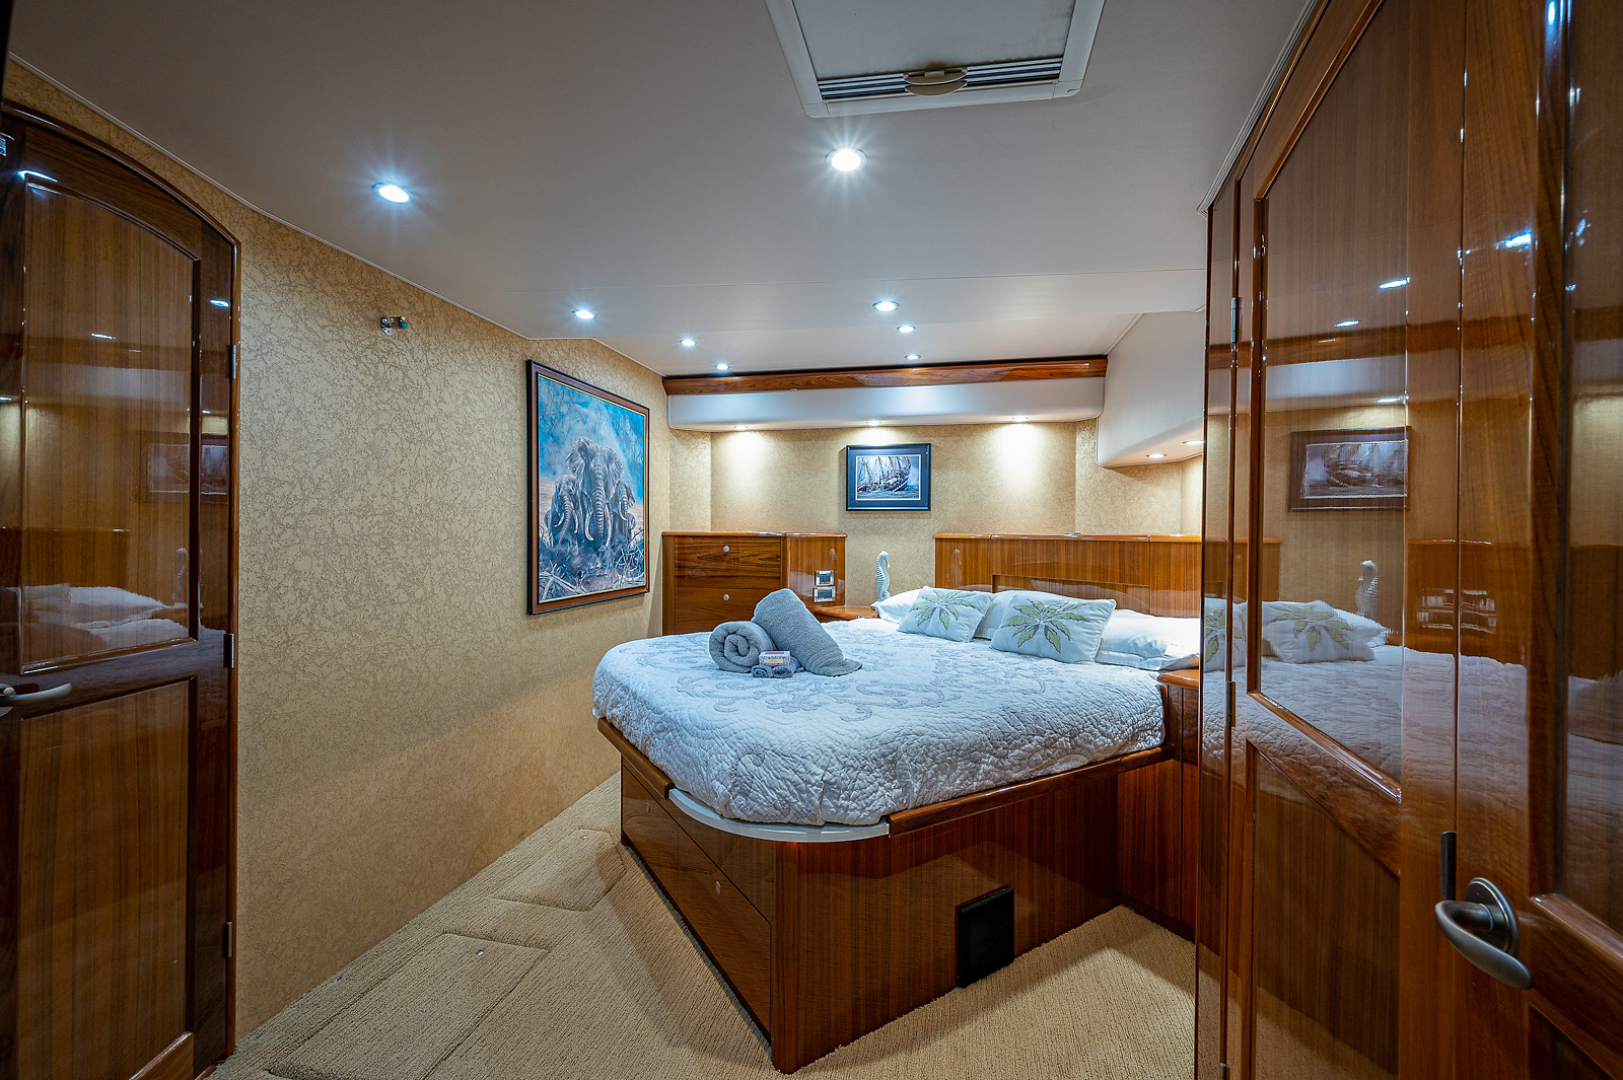 Viking-Convertible 2007-Scoped Out Lighthouse Point-Florida-United States-Master Stateroom-1551979 | Thumbnail